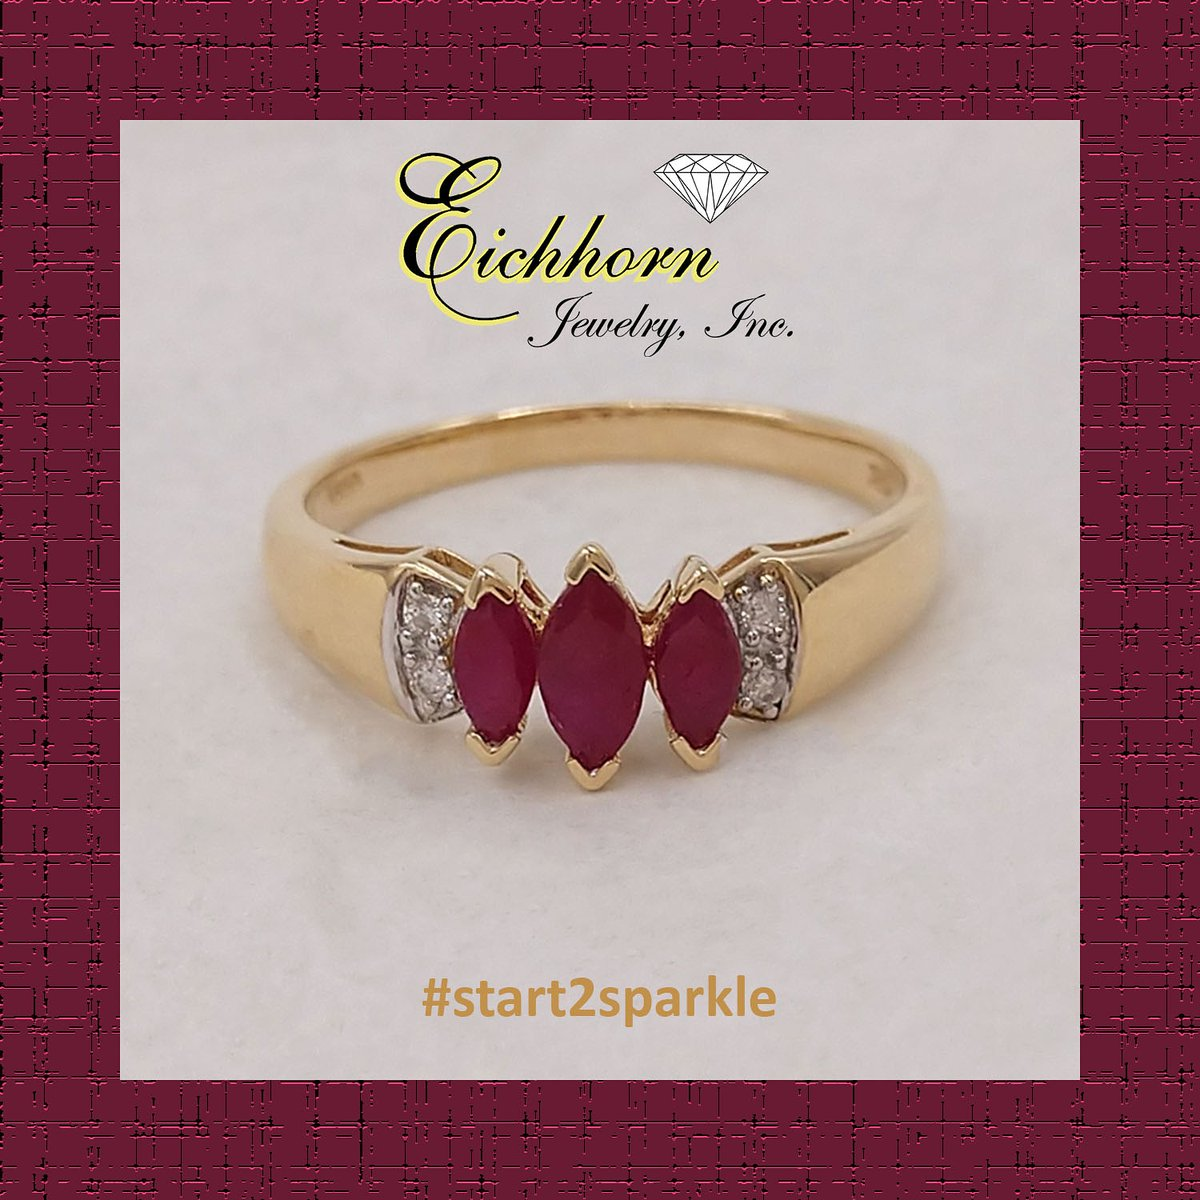 10K yellow gold Ring with 3 marquise-cut, glass-filled Rubies = .73 carat total weight and 4 round brilliant-cut Diamonds, finger size 8.25. From Our Estate Collection $200.  #start2sparkle #alwaysthinkDIAMONDS #eichhornglow #1diamondatatime #estatejewelry #rubyjewelry pic.twitter.com/kdGbLon2ba